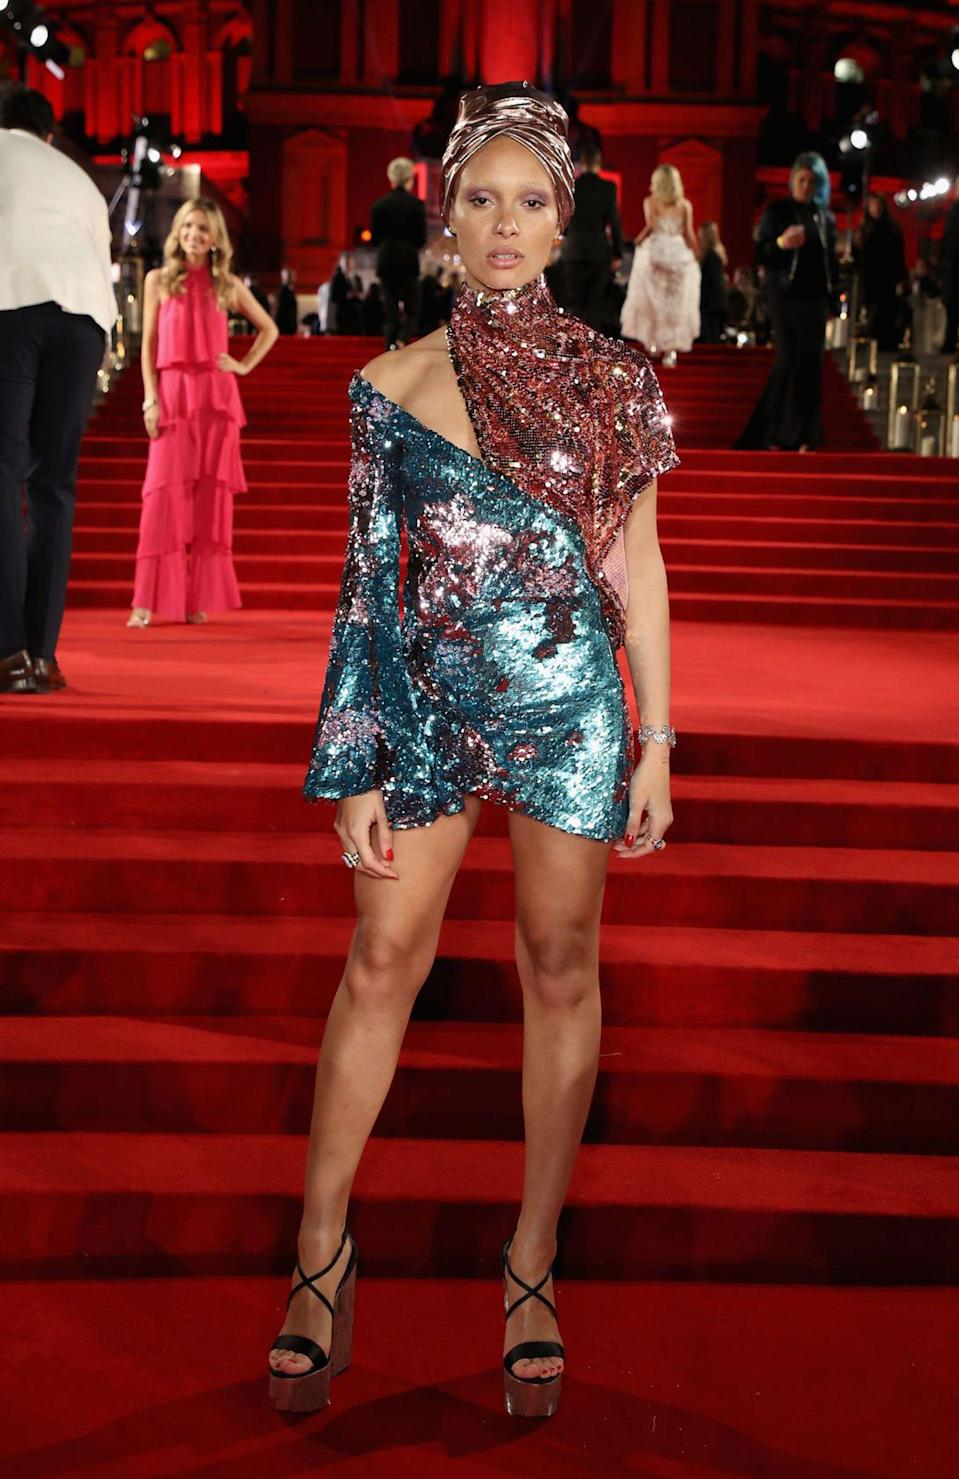 "<p><strong>The Red Carpet Maven: Halpern<br></strong> Michael Halpern began his career in New York after graduating with from the Parsons School of Design. Straight after Parsons, he went on to work at J.Mendel and Oscar de la Renta before moving to London to get his Masters Degree at Central Saint Martins.</p><p>It was his Masters collection that garnered much attention and was featured in <em>AnOther</em>, <em>Dazed</em>, <em>LOVE</em>, <em>CR Fashion Book</em>, and <em>Self Service</em> magazines. He also caught the attention of Versace, and after graduating from CSM, Halpern was hired to consult on its couture label, Atelier Versace.</p><p>In February 2017, Michael debuted his eponymous brand Halpern during London Fashion Week to critical acclaim. Glittering, glamorous, feminine and luxurious, earlier this month, Adwoa Aboah chose a Halpern piece to wear to the <a href=""http://www.refinery29.com/2017/12/183927/british-fashion-awards-2017-winners?geo=us&_ga=2.224301464.285858124.1513563908-1787511592.1488467768"" rel=""nofollow noopener"" target=""_blank"" data-ylk=""slk:Fashion Awards 2017"" class=""link rapid-noclick-resp"">Fashion Awards 2017</a>. At the event, Halpern won the award for British Emerging Talent, a sign that his success has really just begun.</p><span class=""copyright"">Photo: Mike Marsland/BFC/Getty Images</span>"